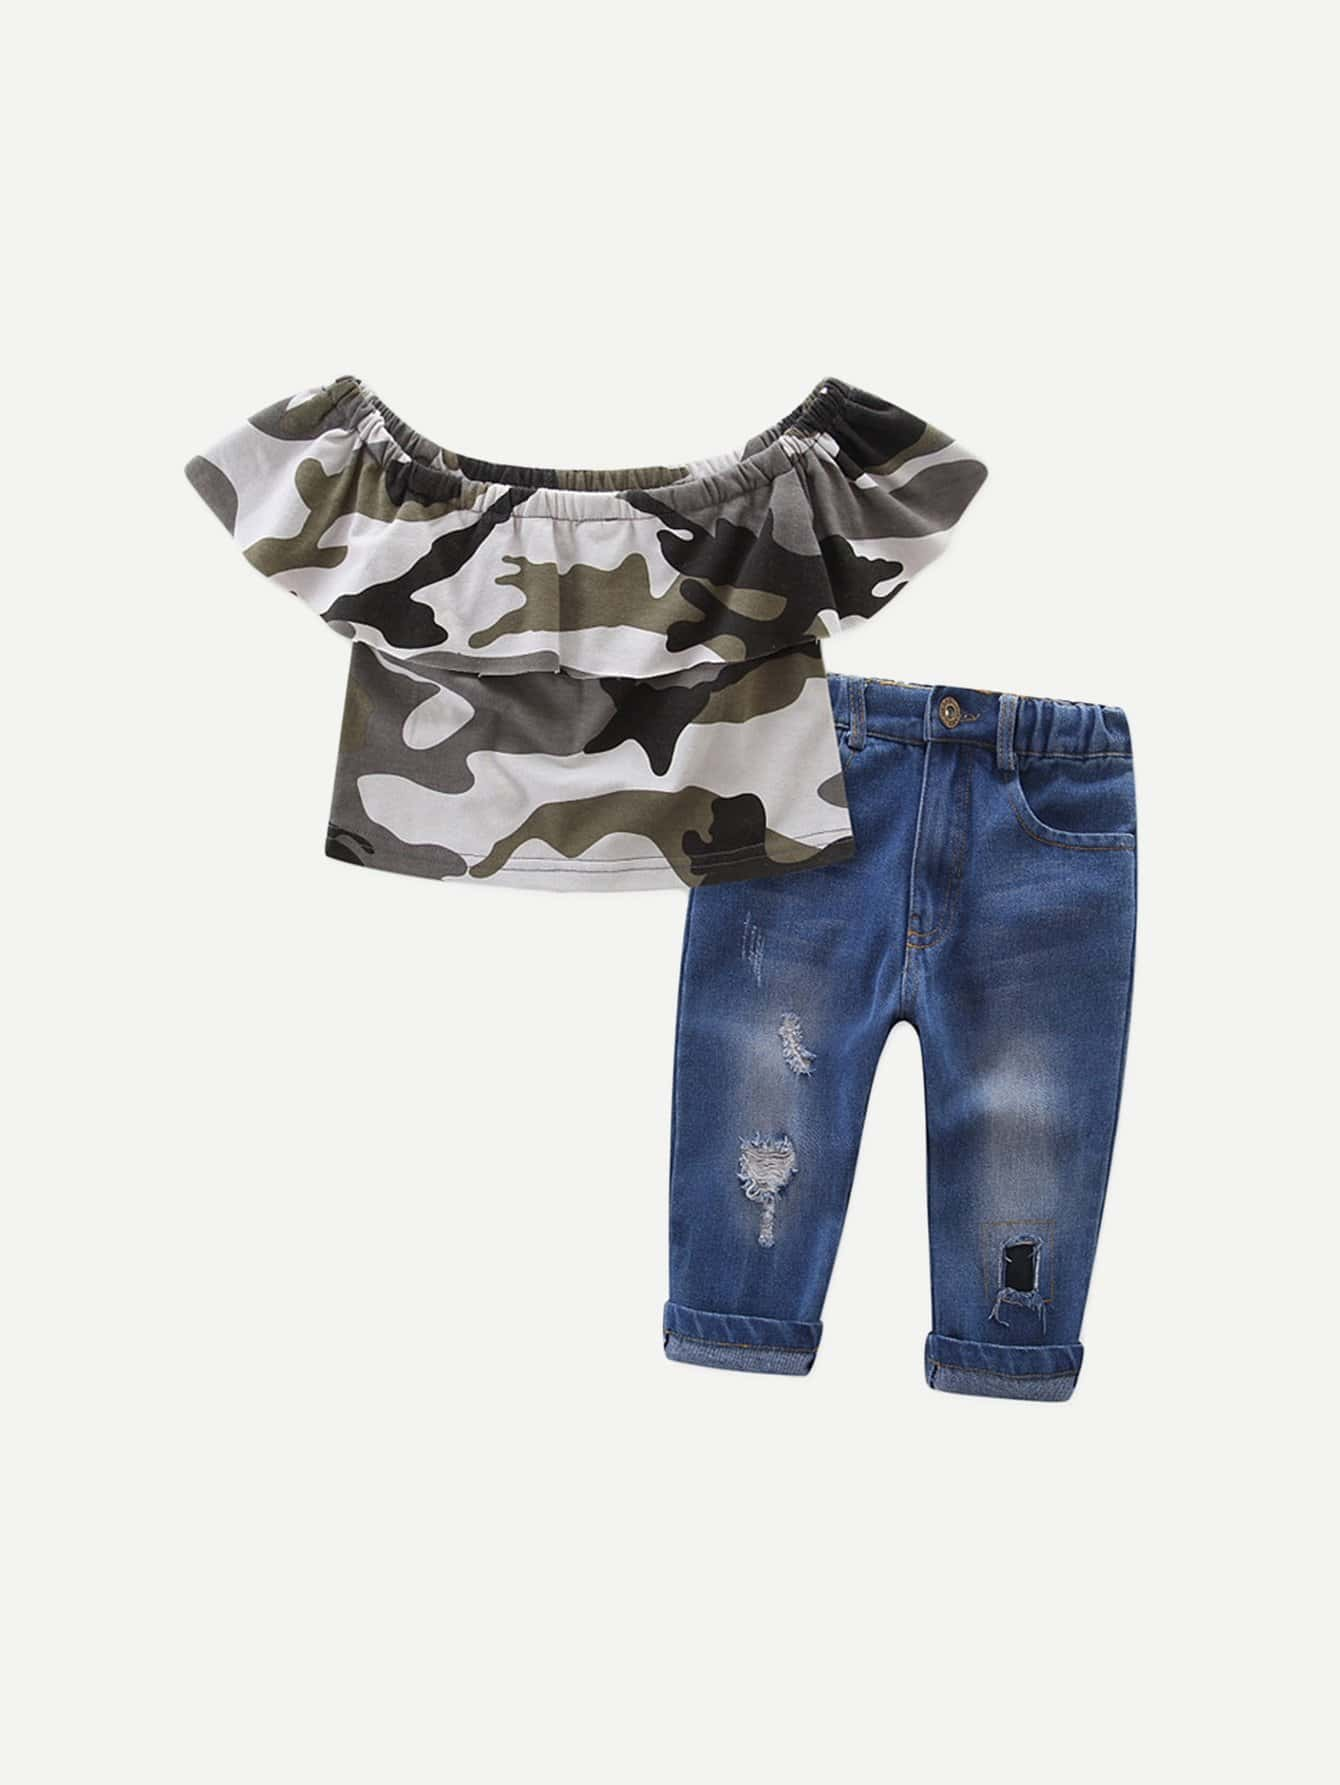 Girls Camo Ruffle Top With Jeans